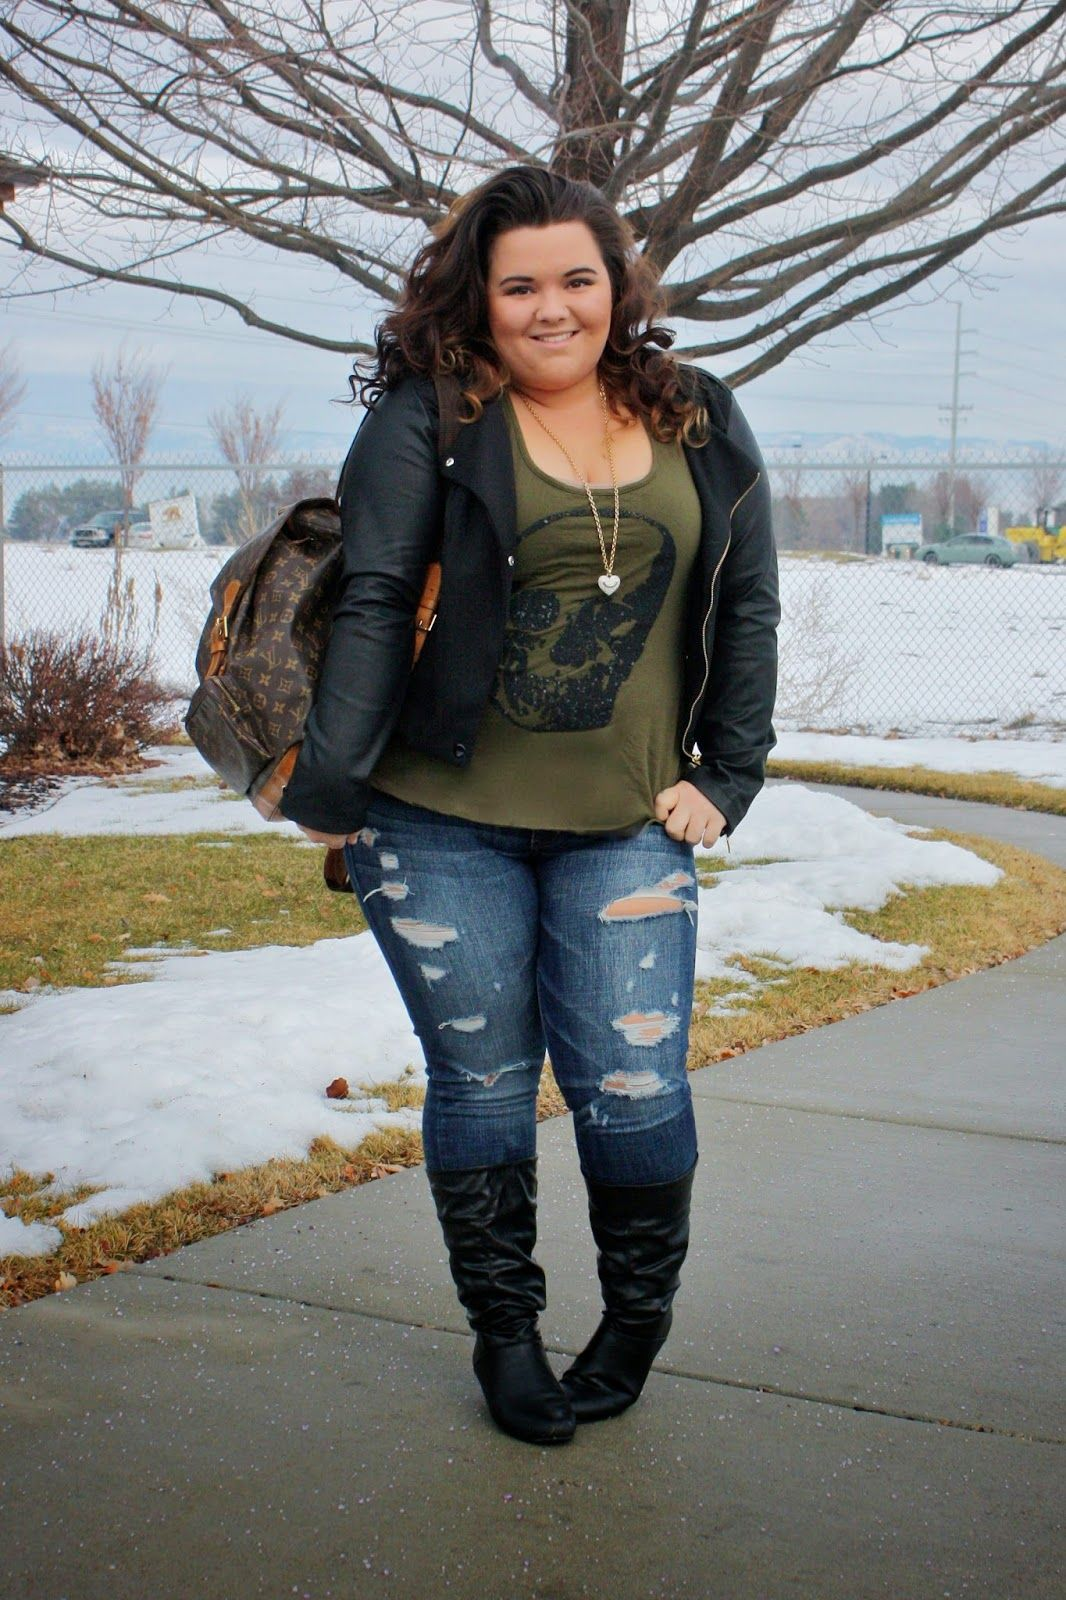 45213fd45c3 plus size college fashion - Google Search